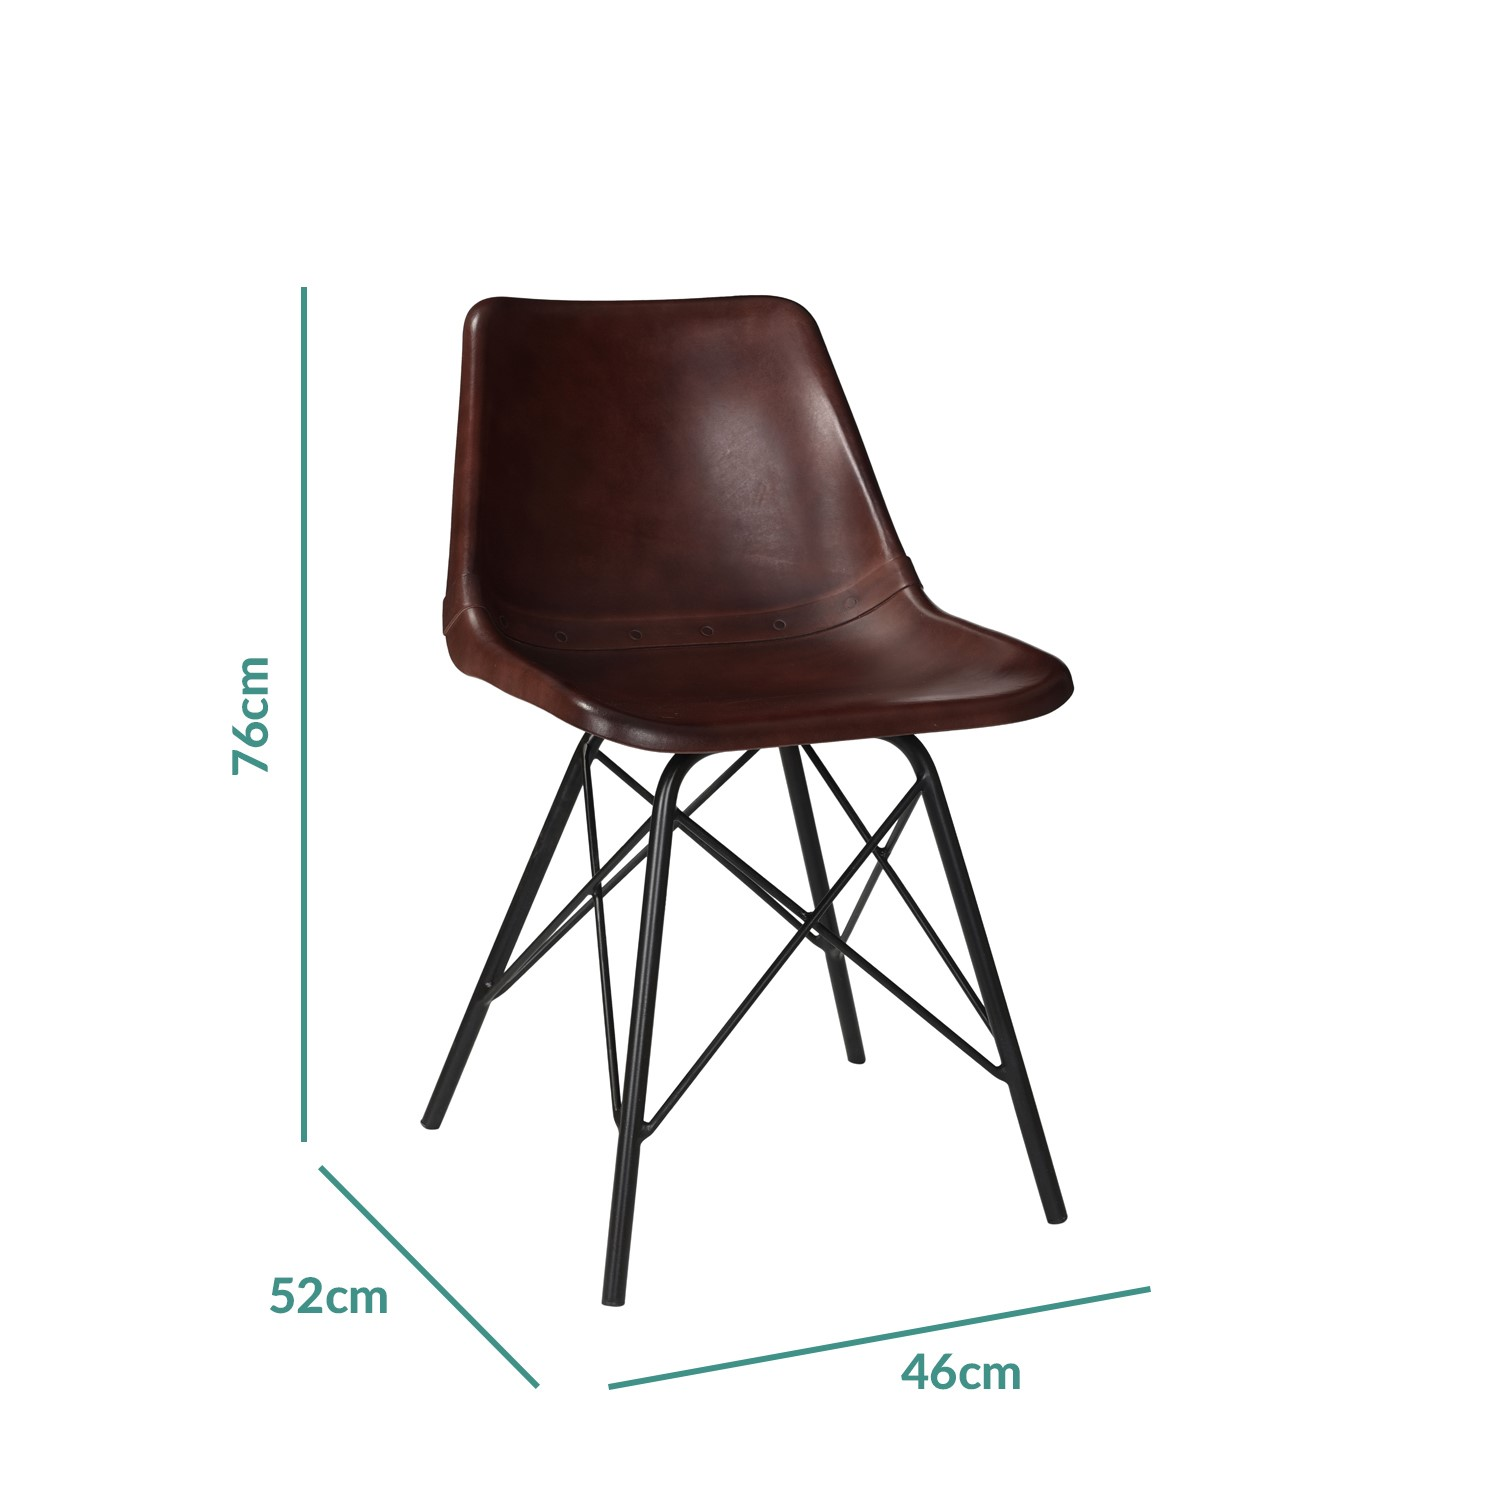 Magnificent Jaxon Industrial Dining Set With 4 Dark Red Leather Dining Chairs Creativecarmelina Interior Chair Design Creativecarmelinacom